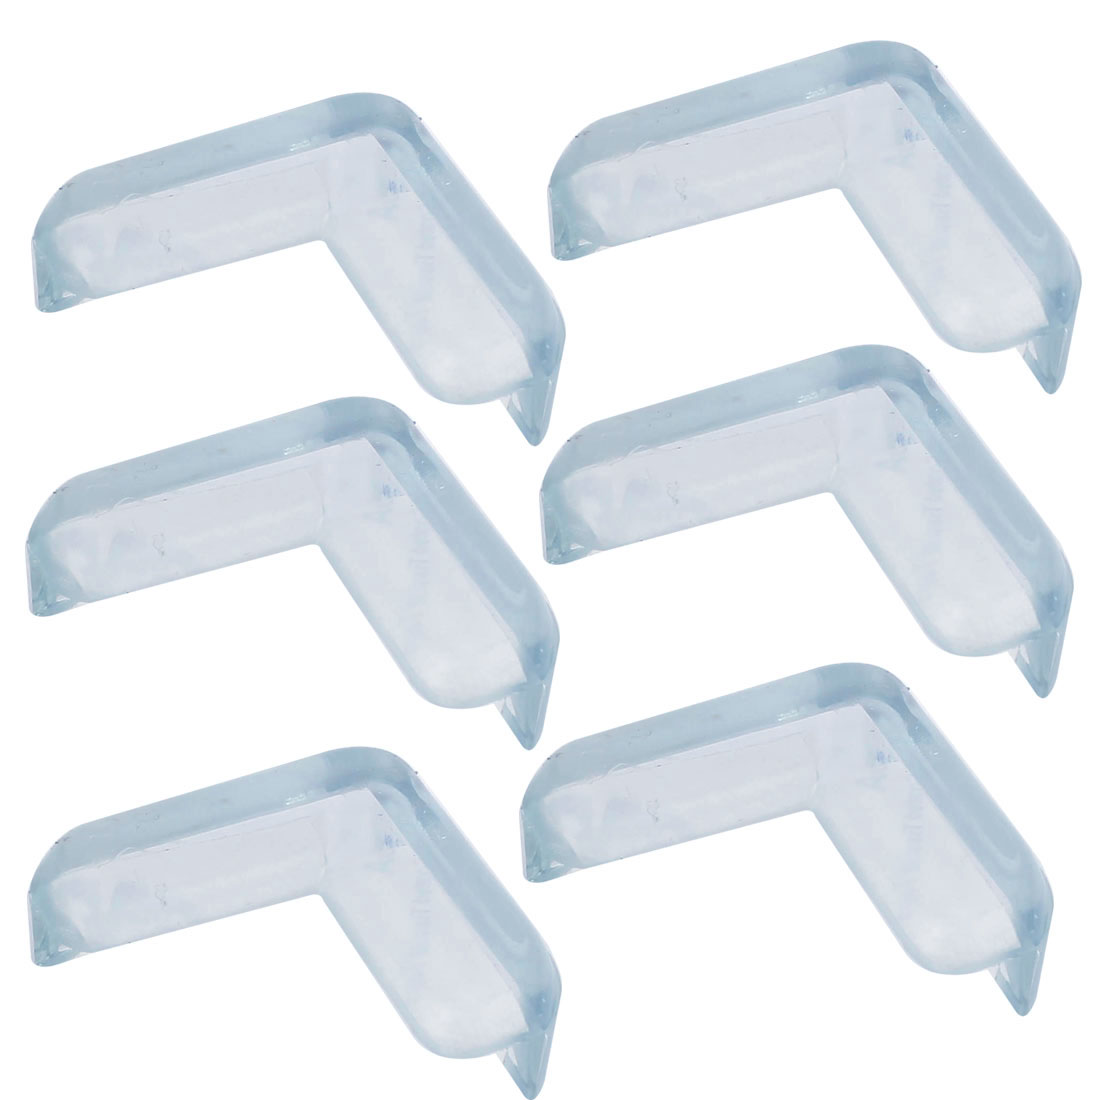 6 Pcs Clear Soft Rubber Desk Corner Pad Cover Protector Cushion